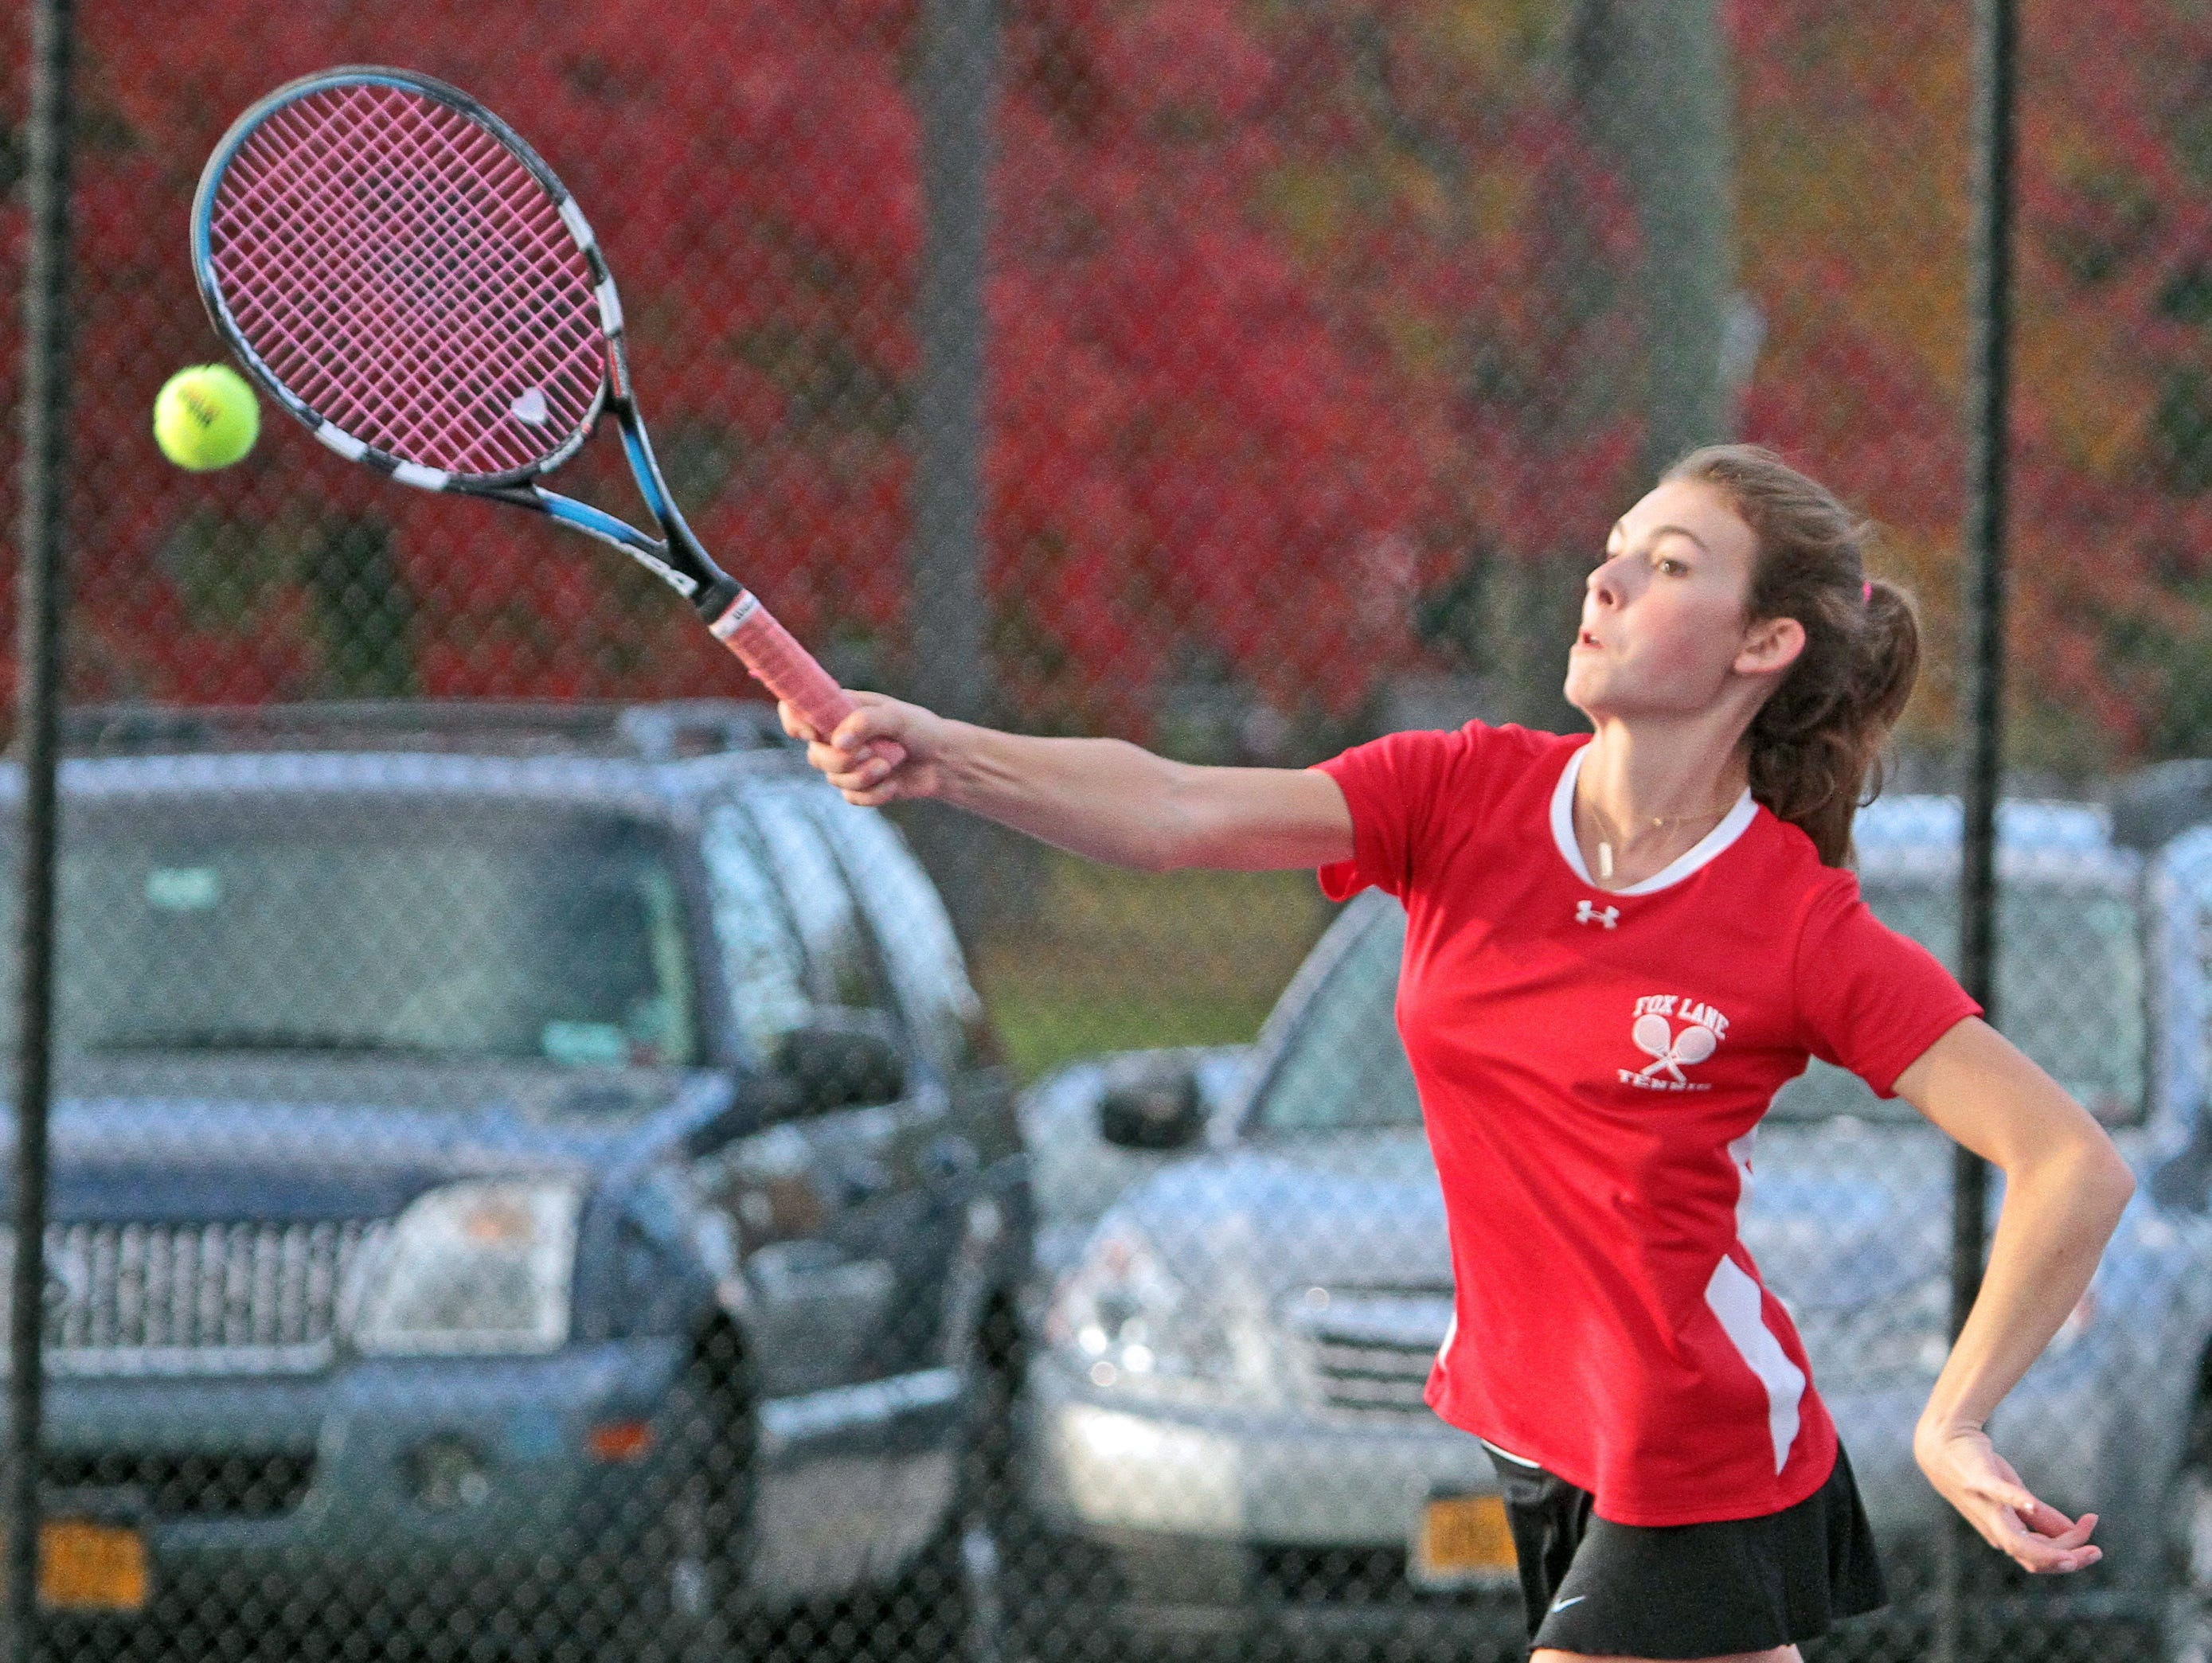 Lachlan Spence of Fox Lane returns a shot during a doubles match during the high school tennis championships at John Jay Cross River Oct. 13, 2015. Spence and her teammate Abby Bayuk were playing a team from Yorktown.